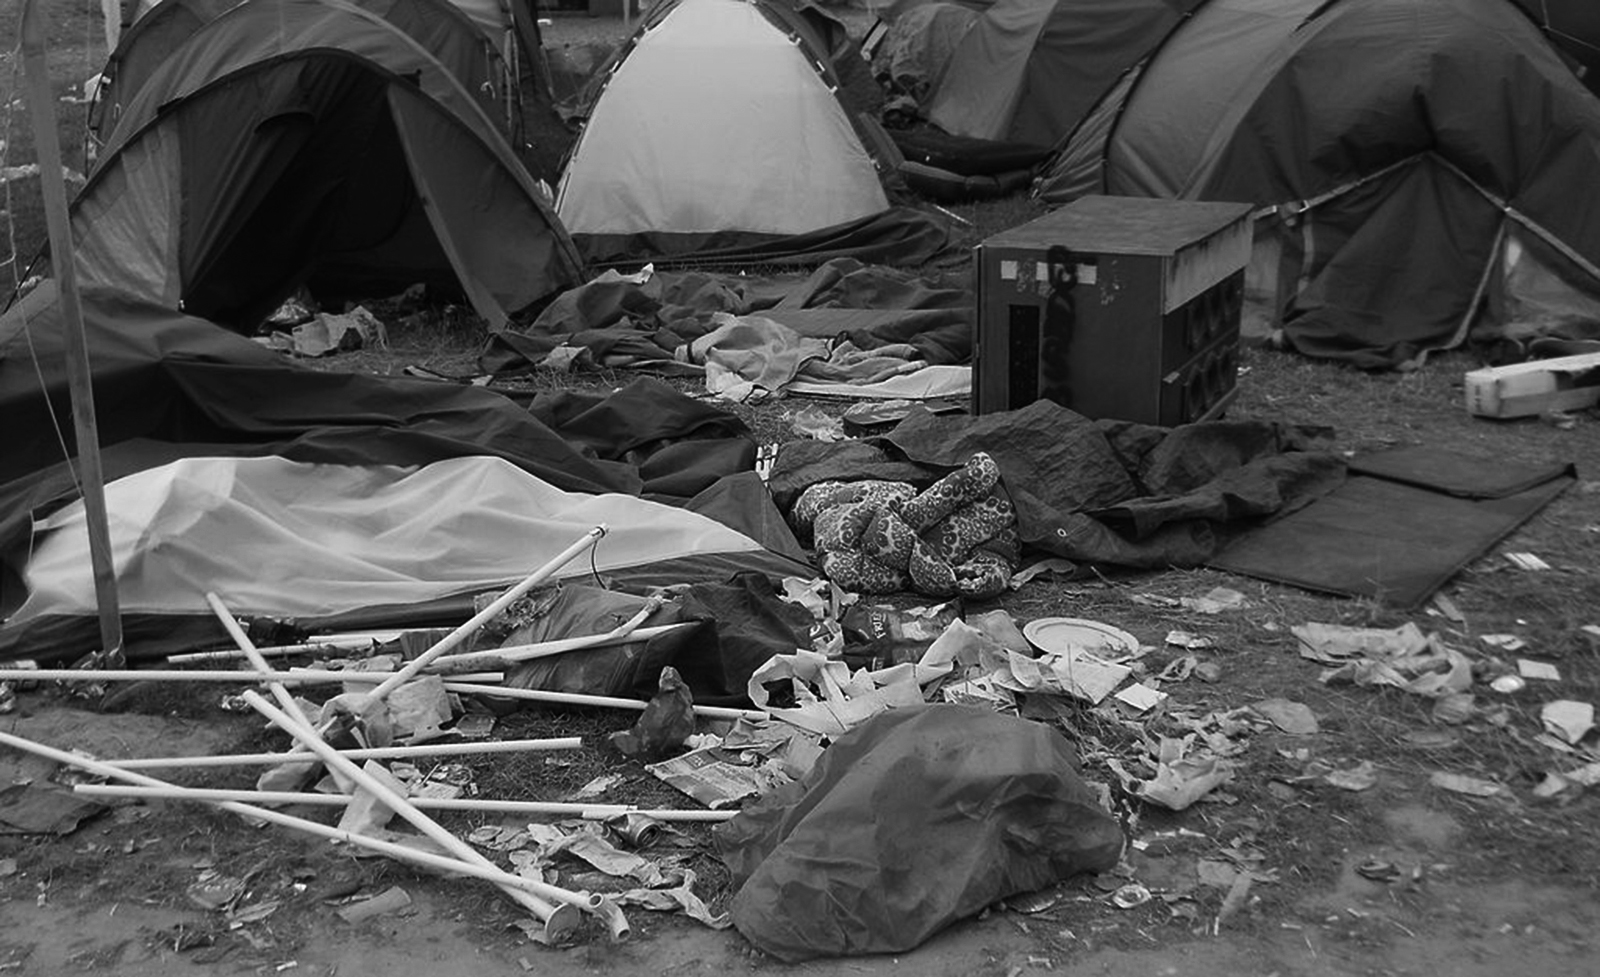 Tents at Roskilde in 2014 (Photo via WikiCommons user Knak)